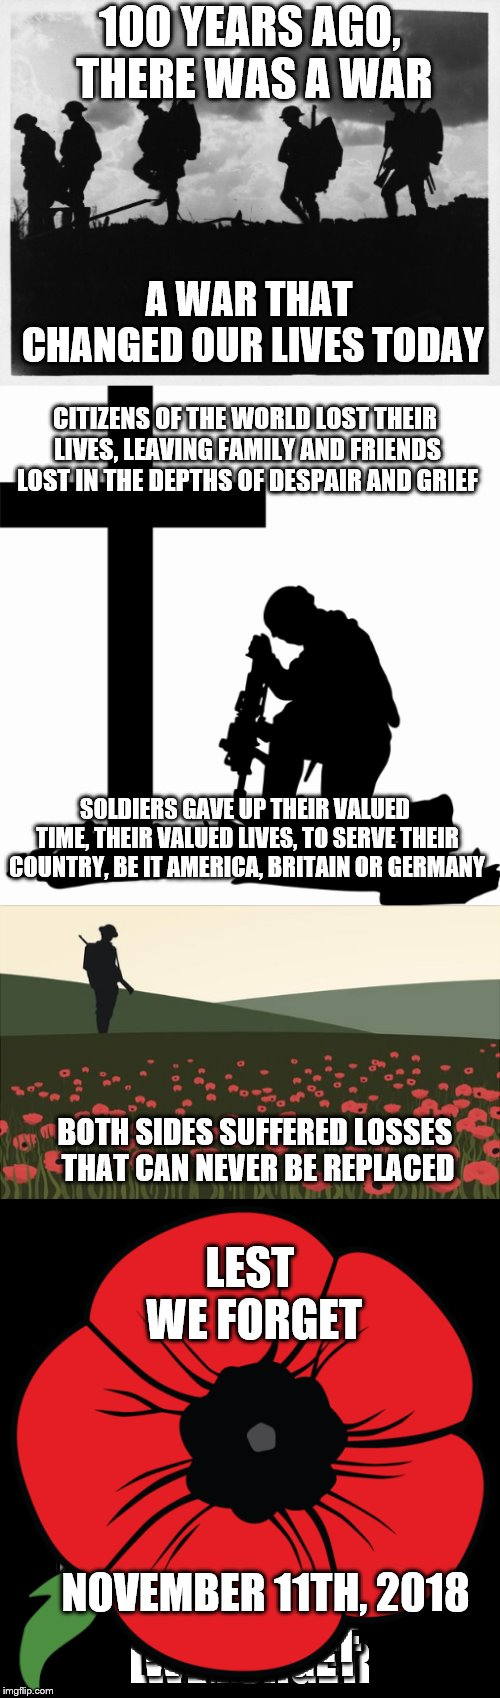 LEST WE FORGET- NOVEMBER 11th, 2018 | 100 YEARS AGO, THERE WAS A WAR LEST WE FORGET A WAR THAT CHANGED OUR LIVES TODAY CITIZENS OF THE WORLD LOST THEIR LIVES, LEAVING FAMILY AND  | image tagged in memes,lest we forget,we shall remember,100 years,world war 1,november 11th 2018 | made w/ Imgflip meme maker